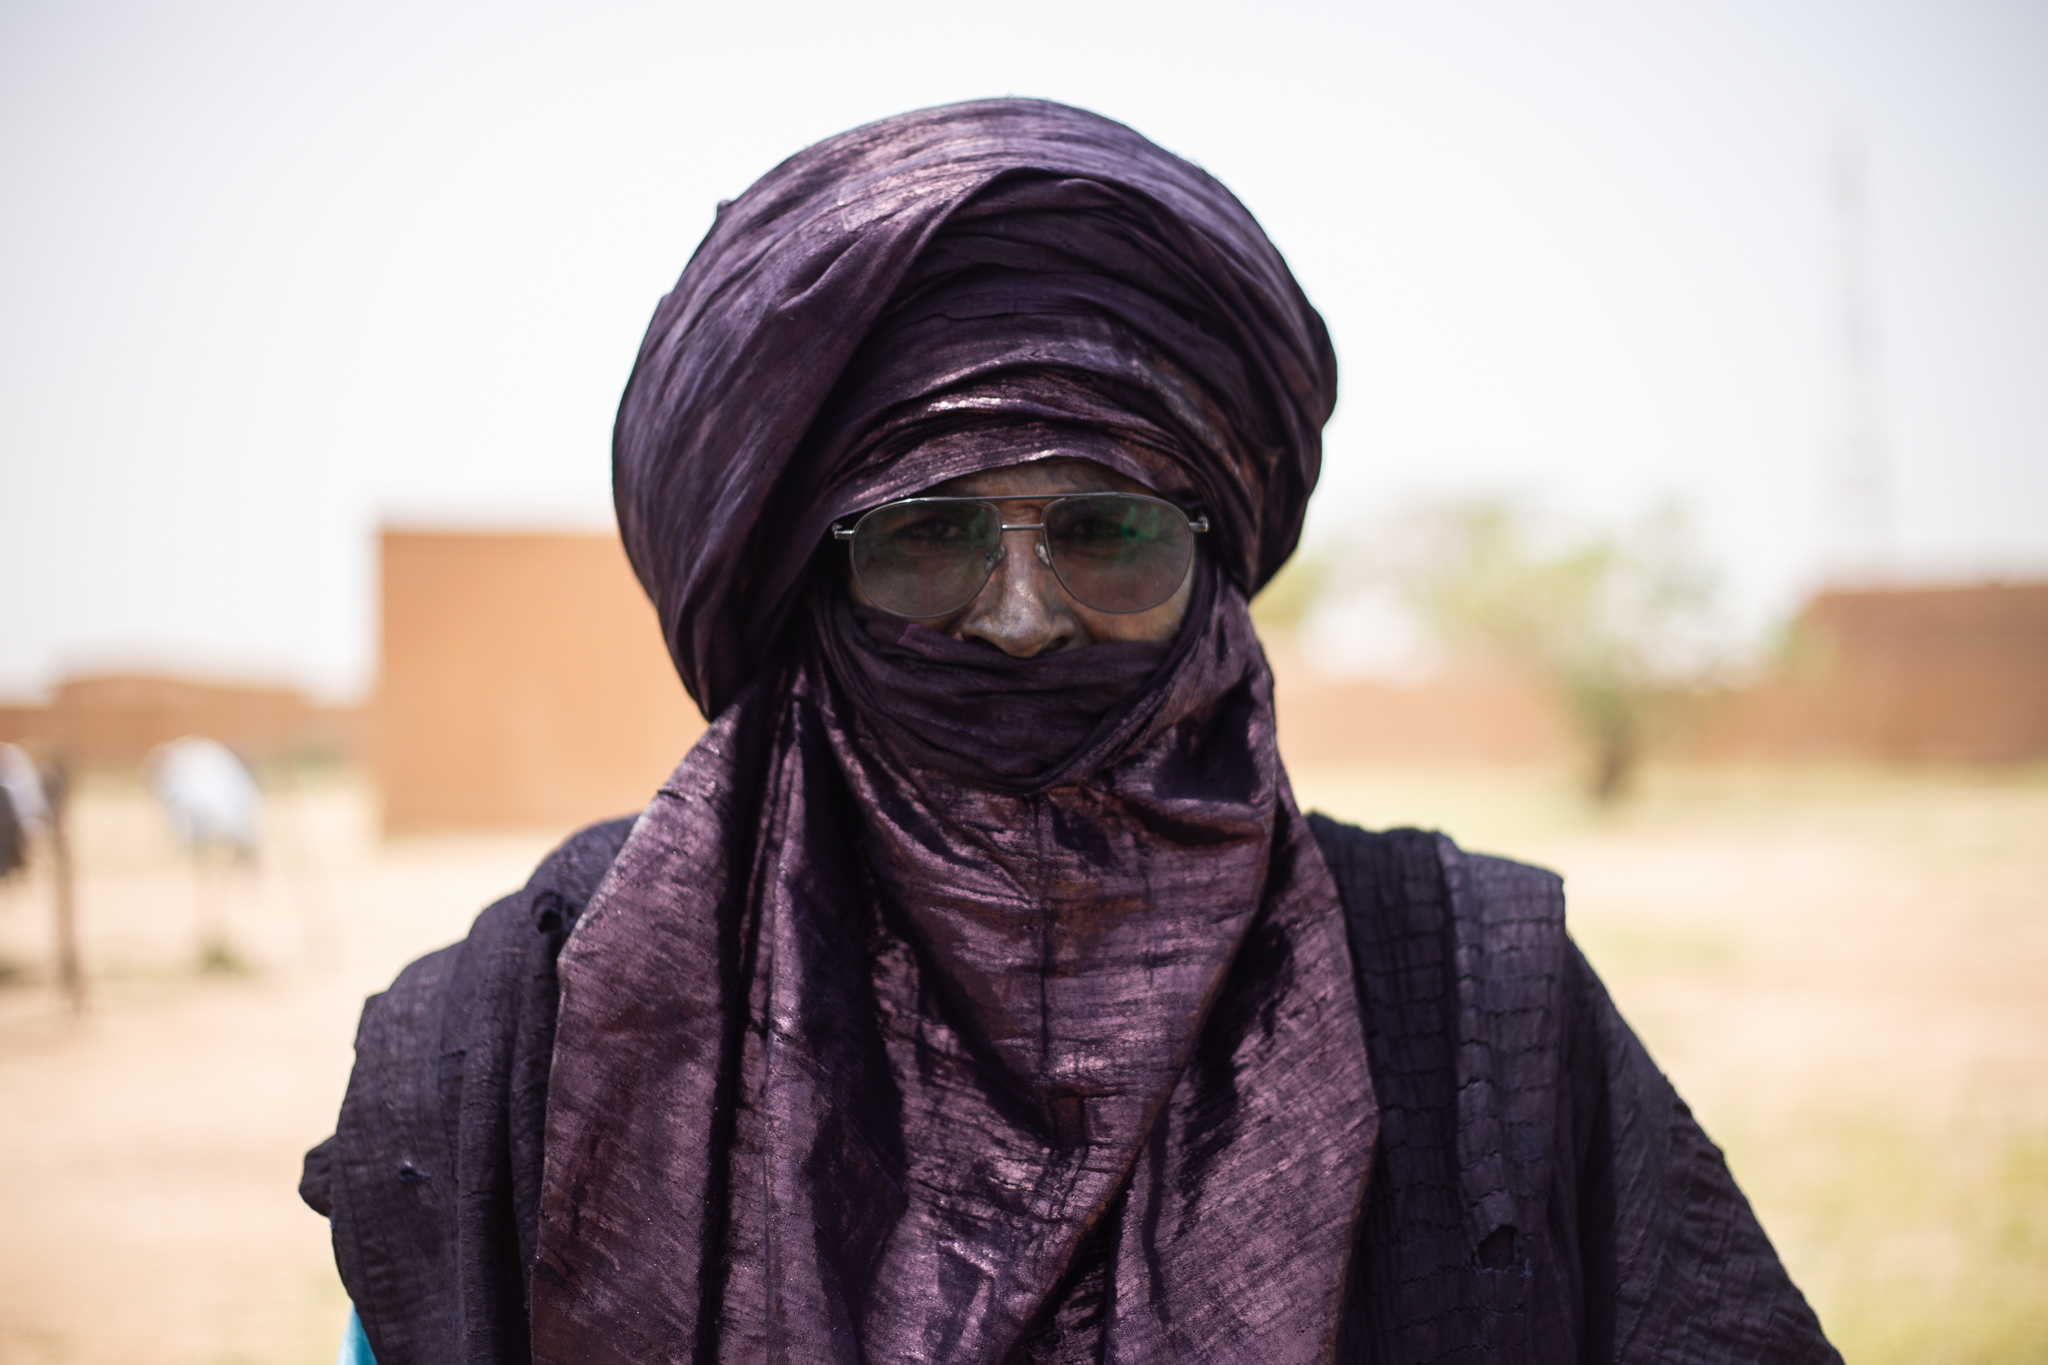 Abbo Ichilane is a respected traditional leader from Iferen village in the Tahoua region.